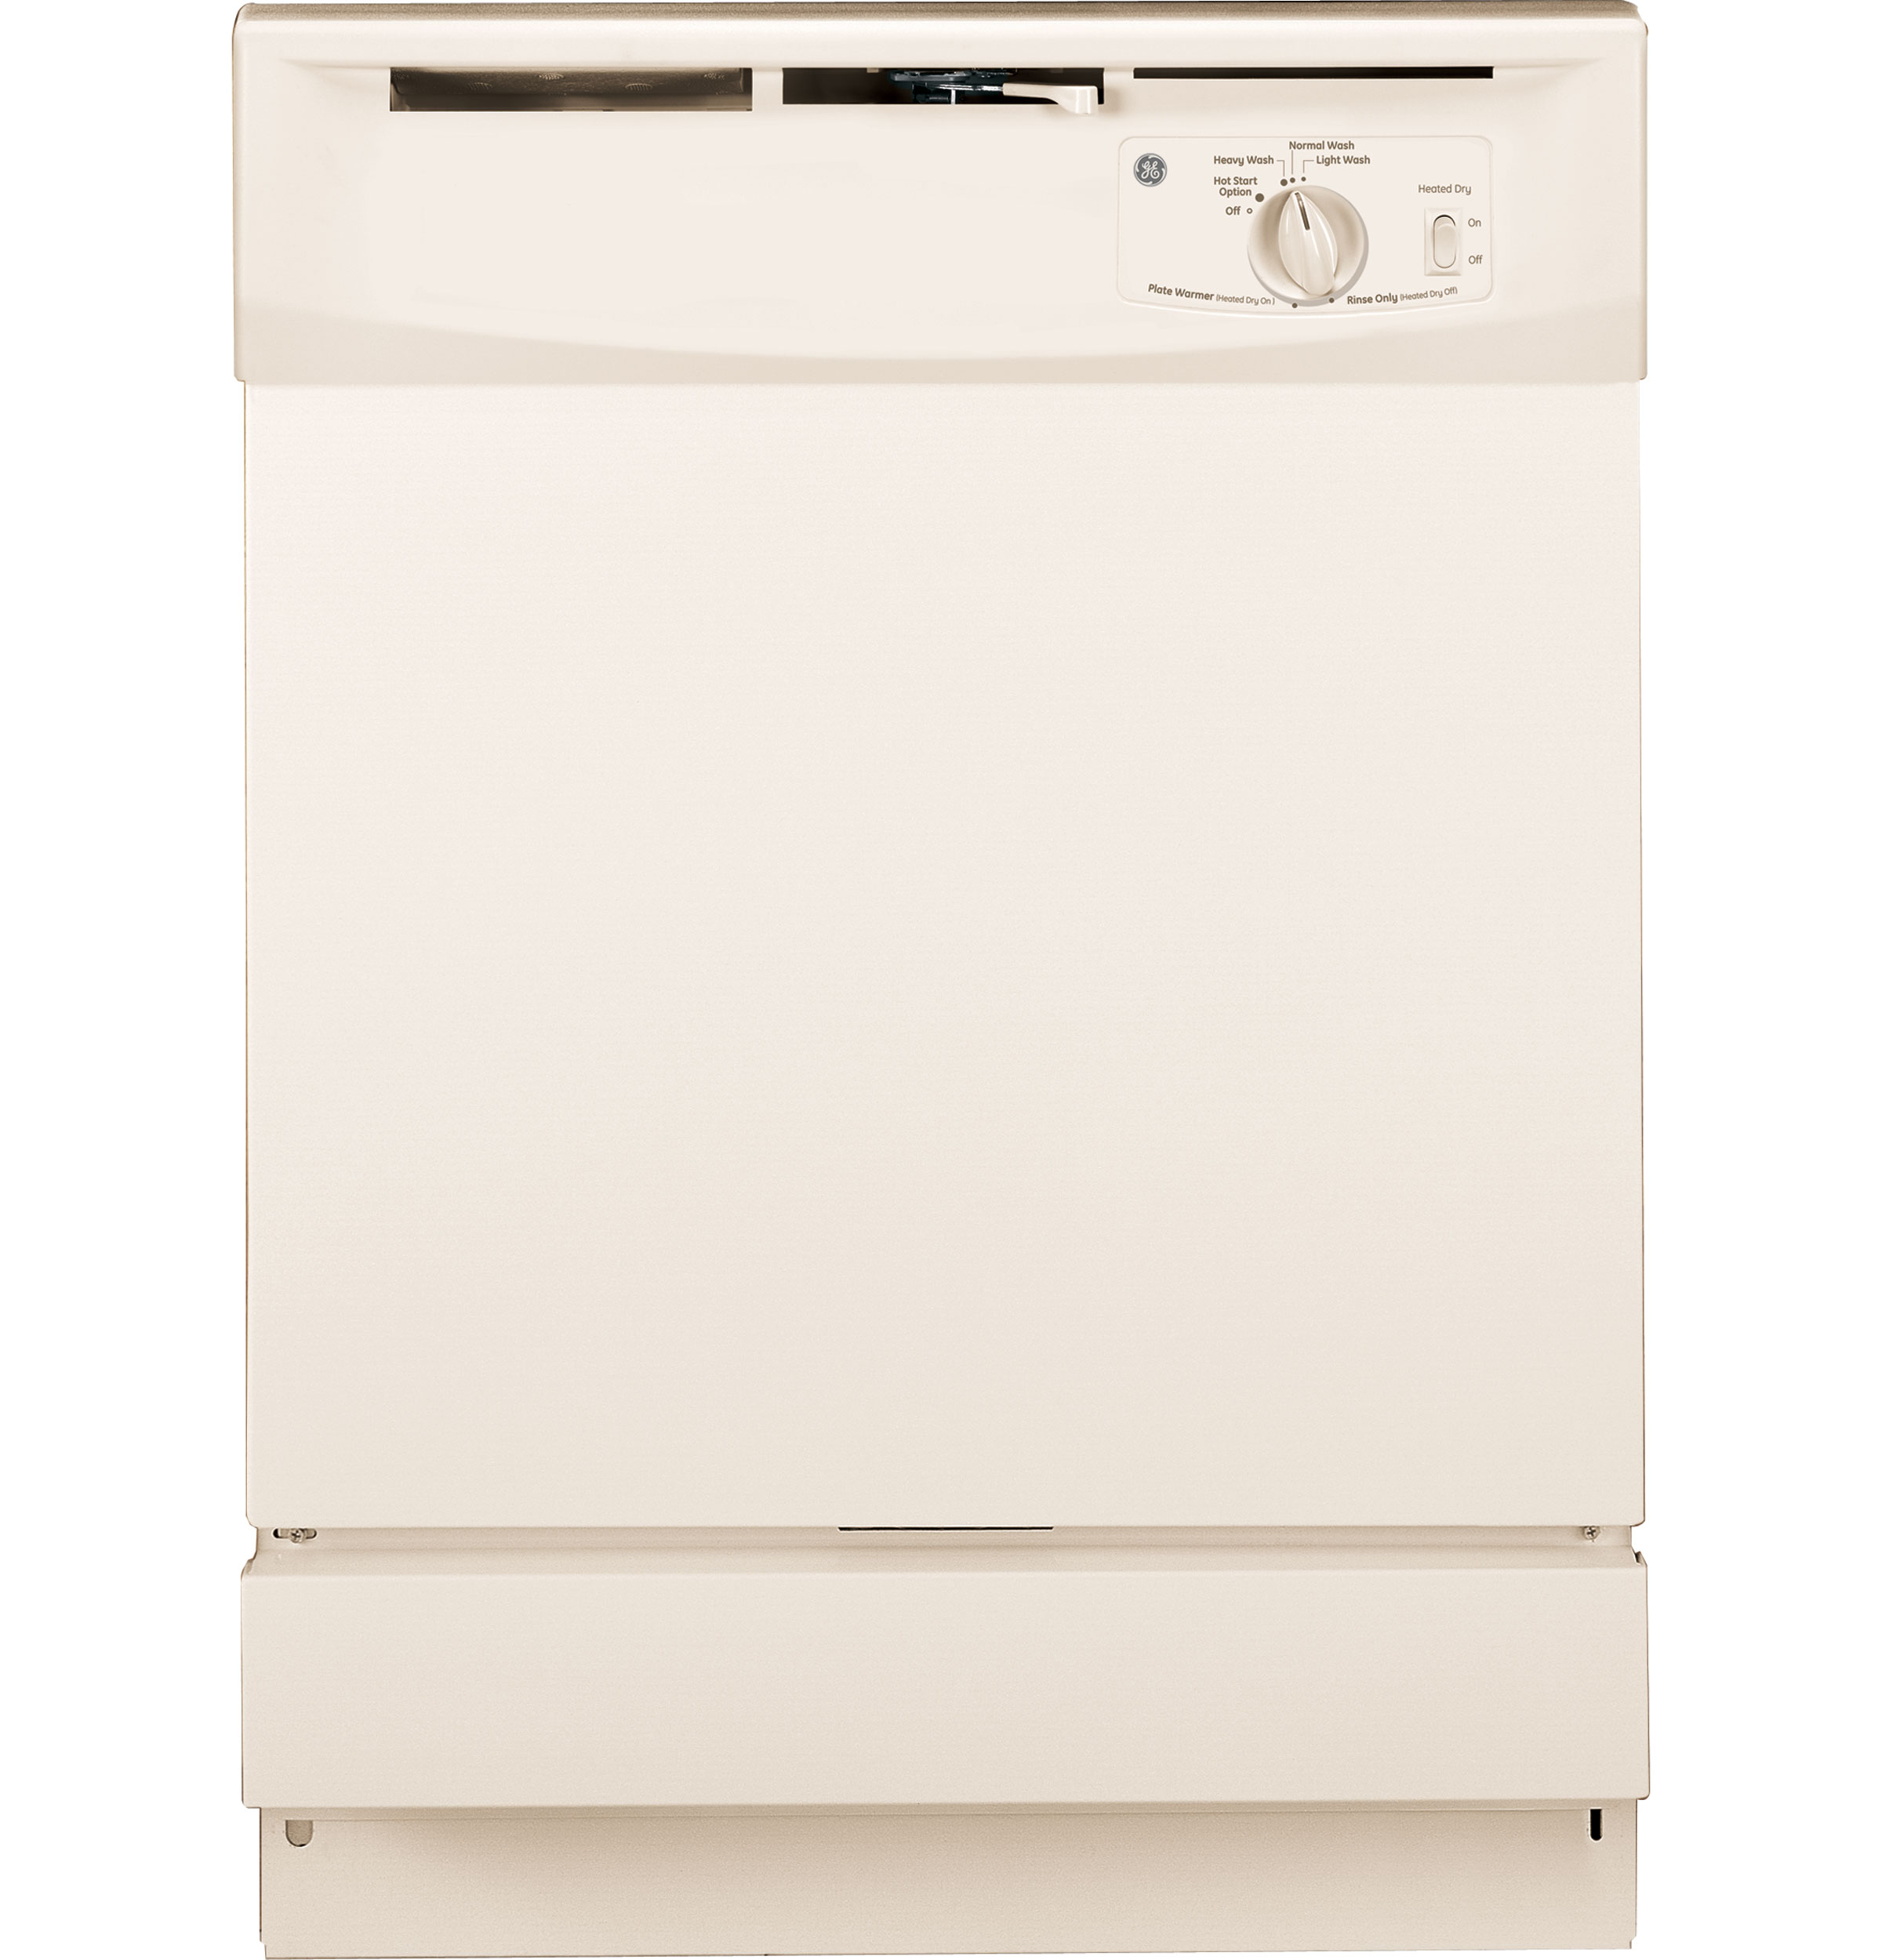 Model: GSD2100VCC | GE GE® Built-In Dishwasher